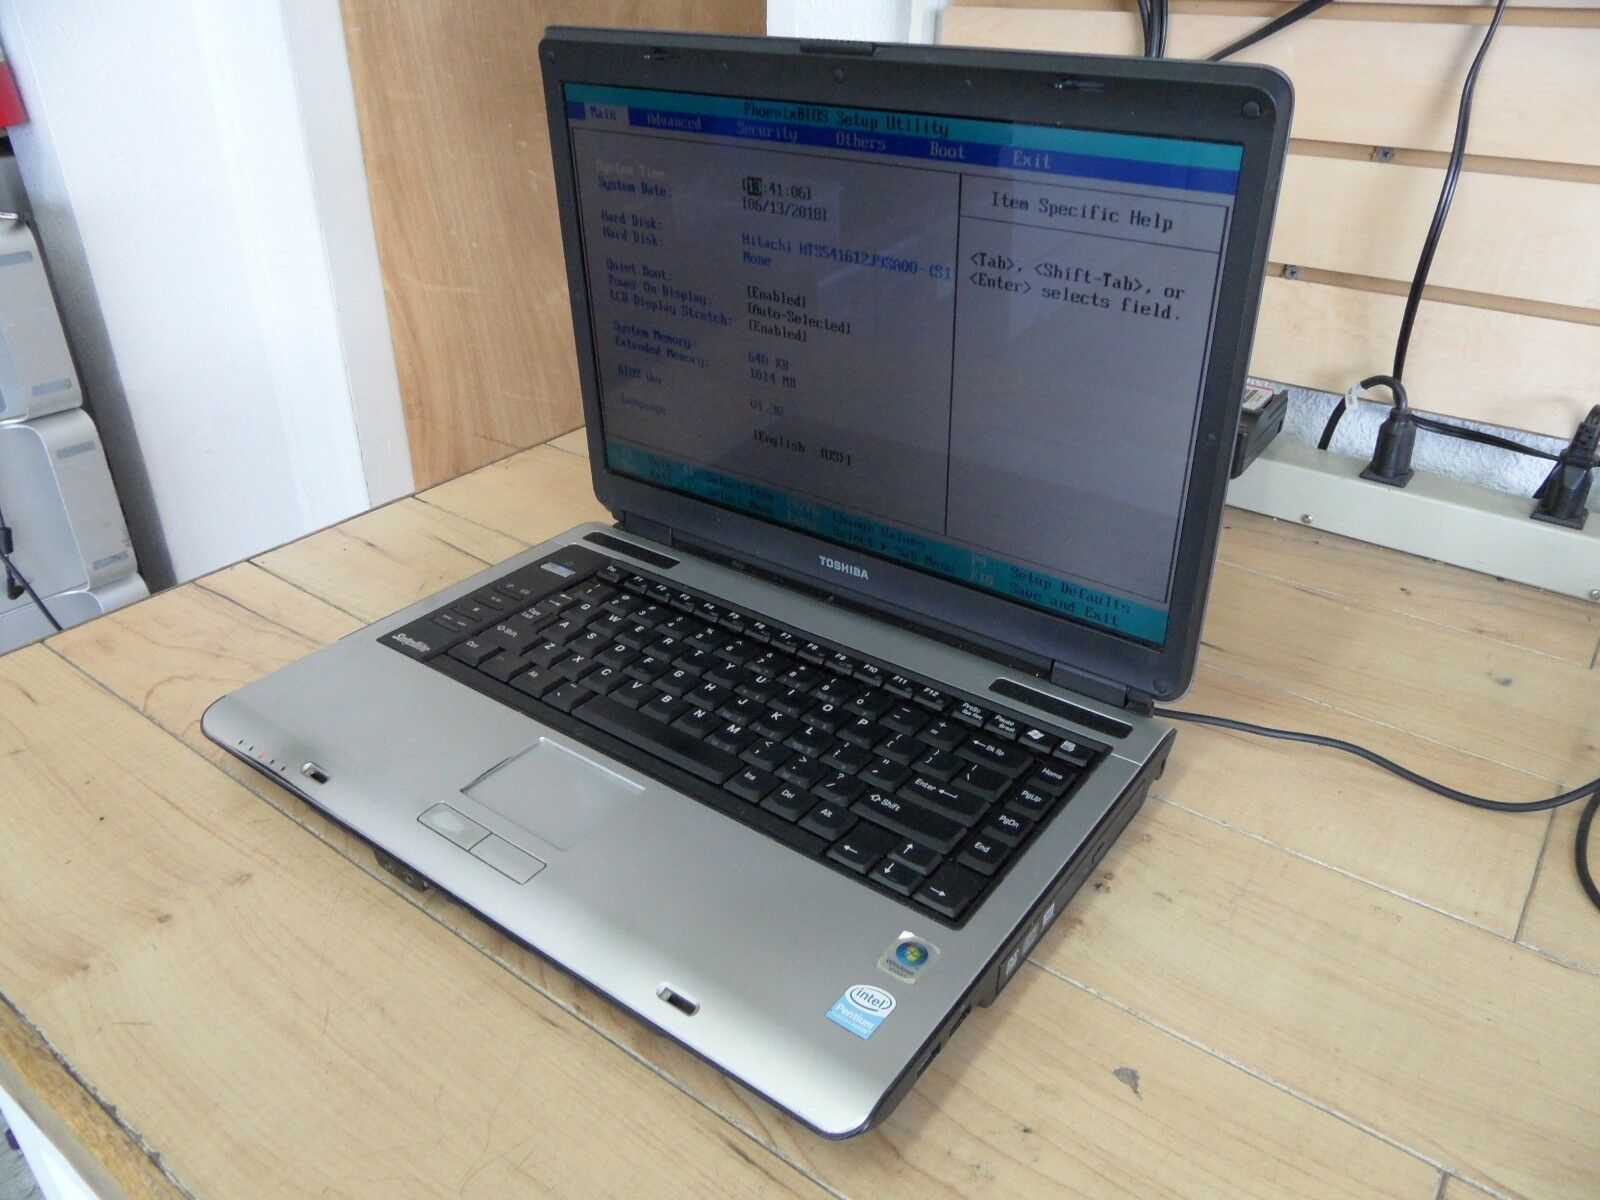 Toshiba Satellite A135 A135-S4527 Laptop For Parts Posted Bios Hard Drive Wiped*